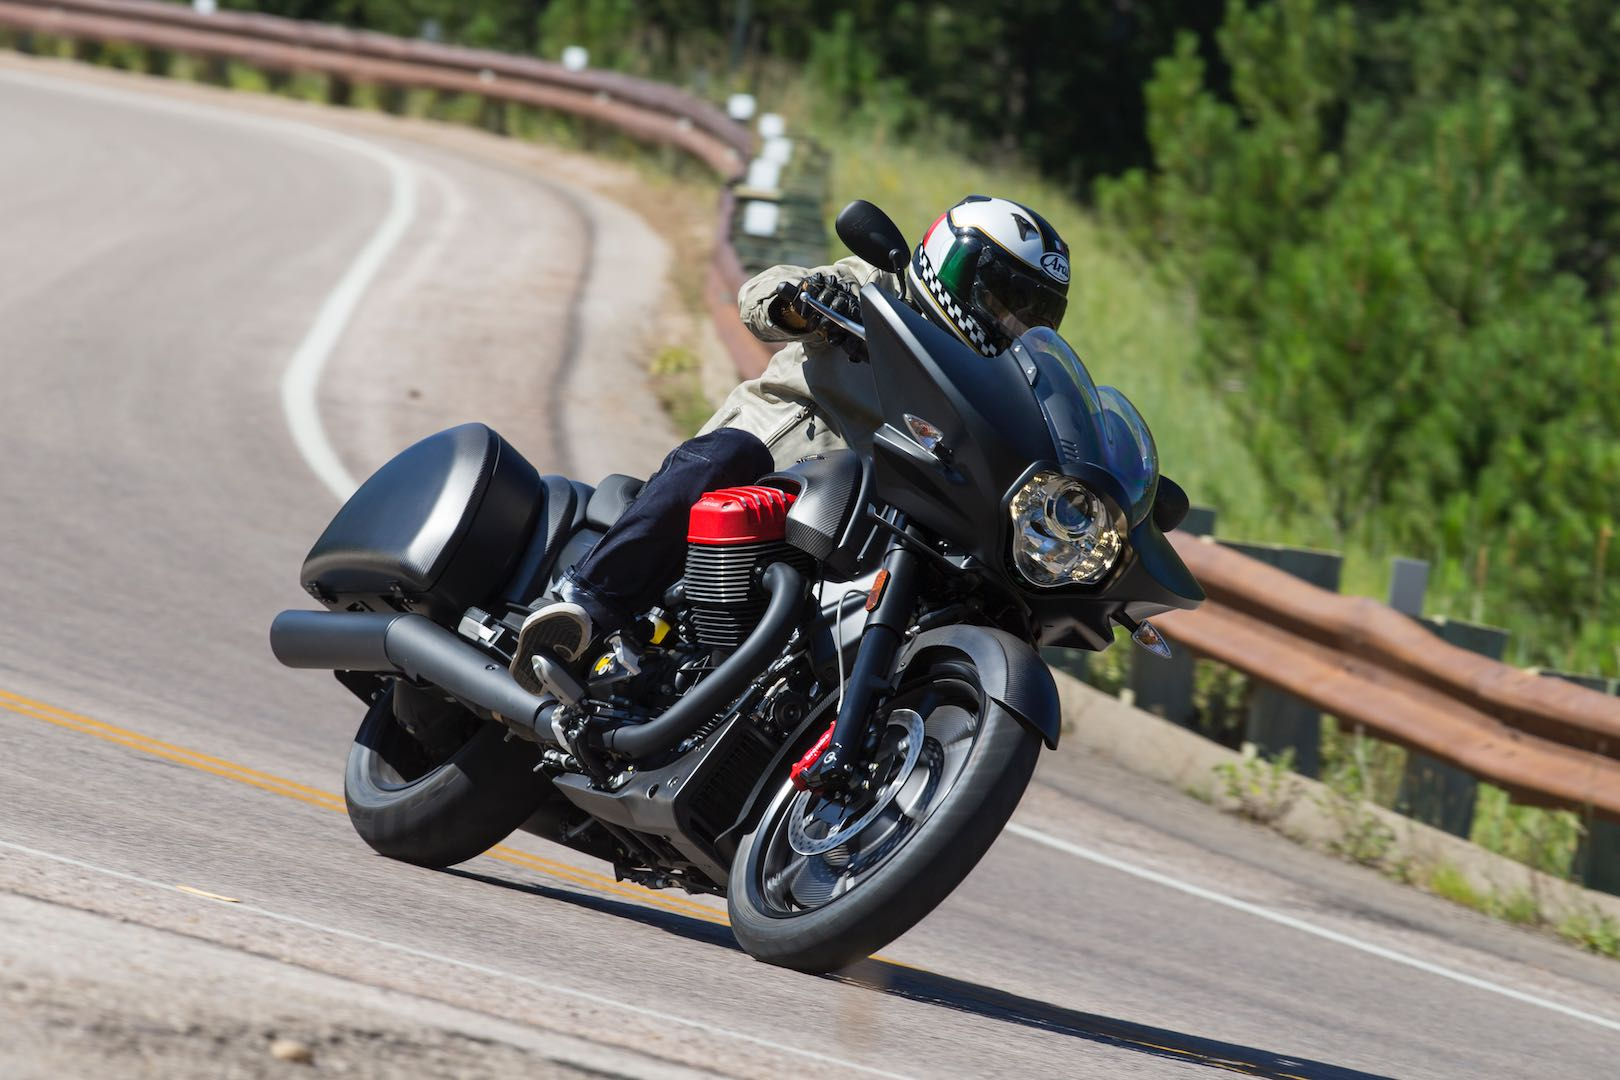 2017 Moto Guzzi MGX-21 Flying Fortress Review: 3000-Mile Test from Sturgis to PA